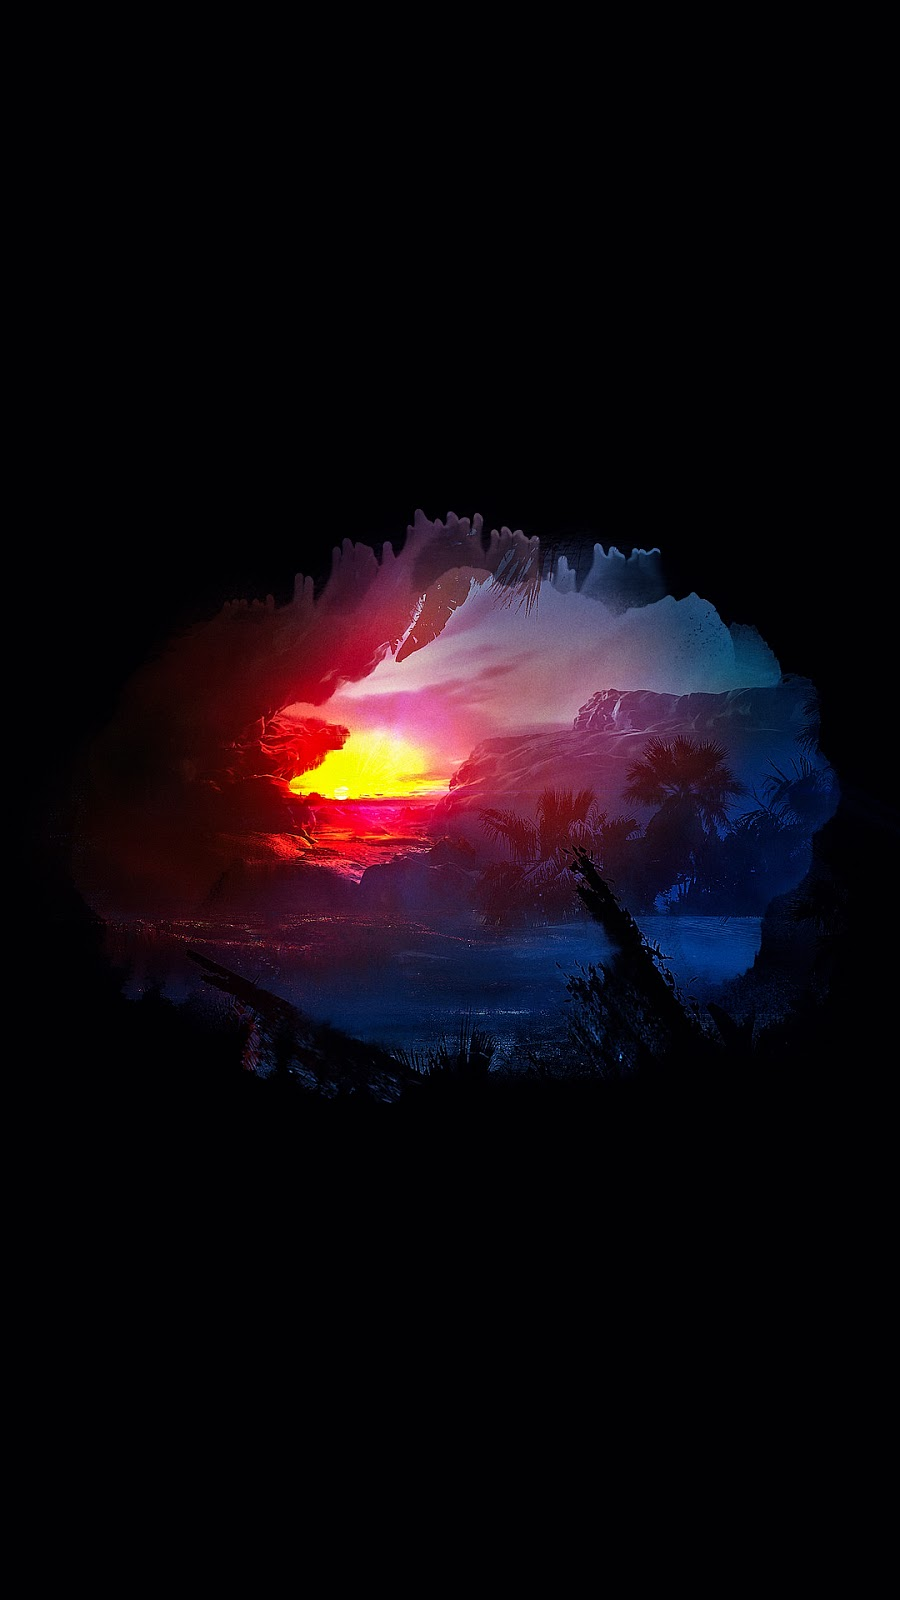 Sunset (for Amoled display)